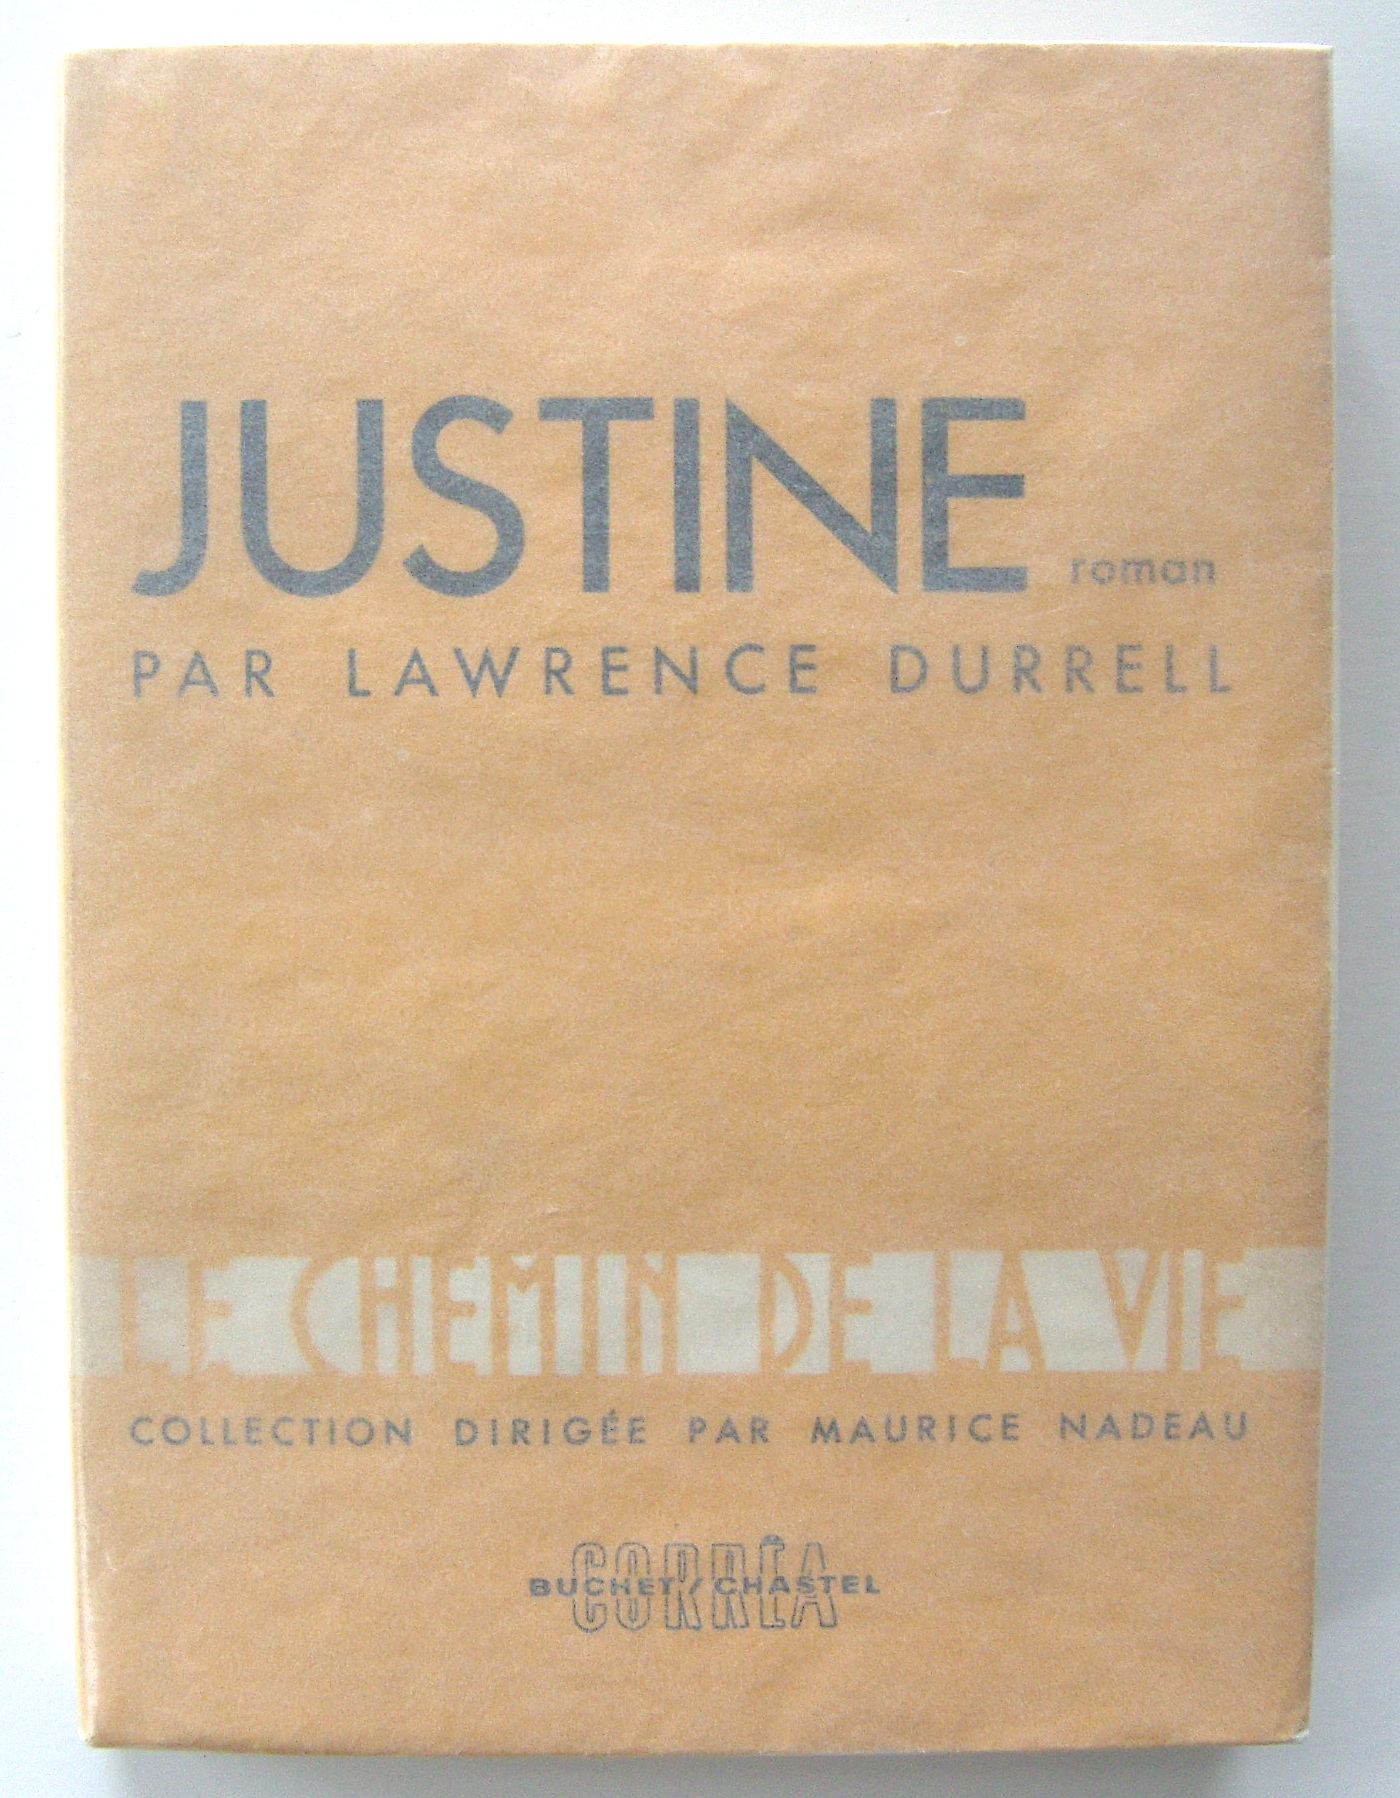 Justine, by Lawrence Durrell, Association Copy (Henry Miller)